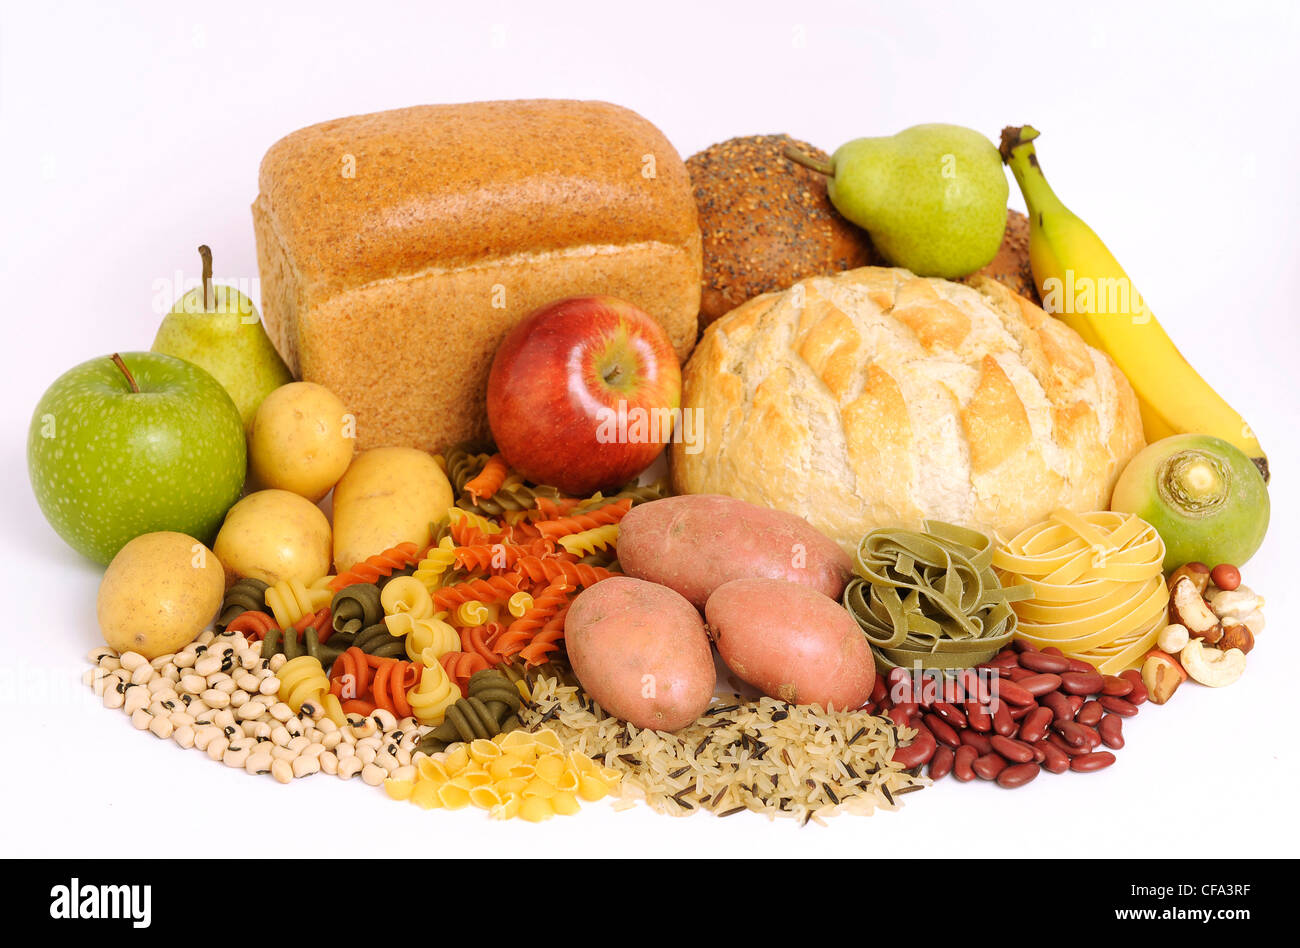 Carbohydrates and fruit still life - Stock Image